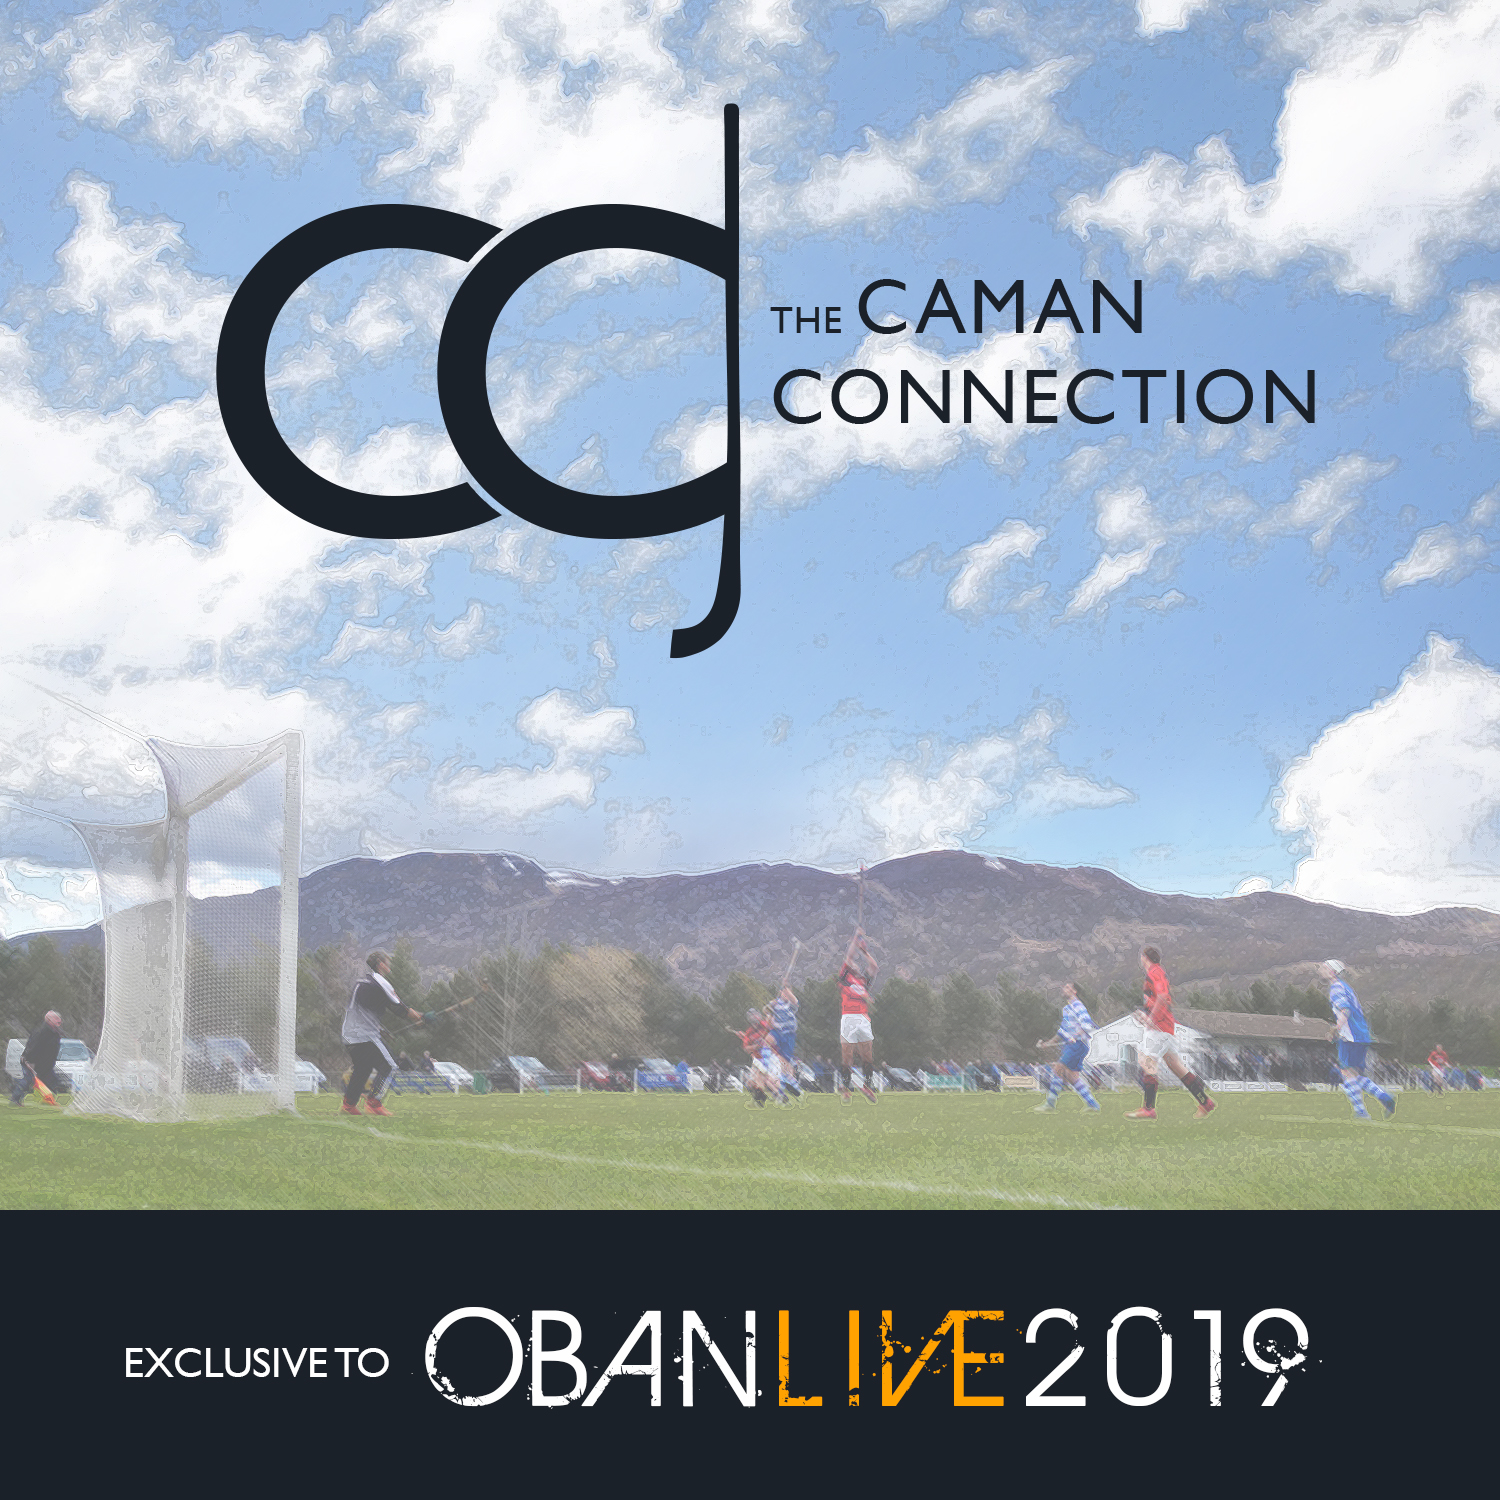 THE CAMAN CONNECTION | OBAN LIVE